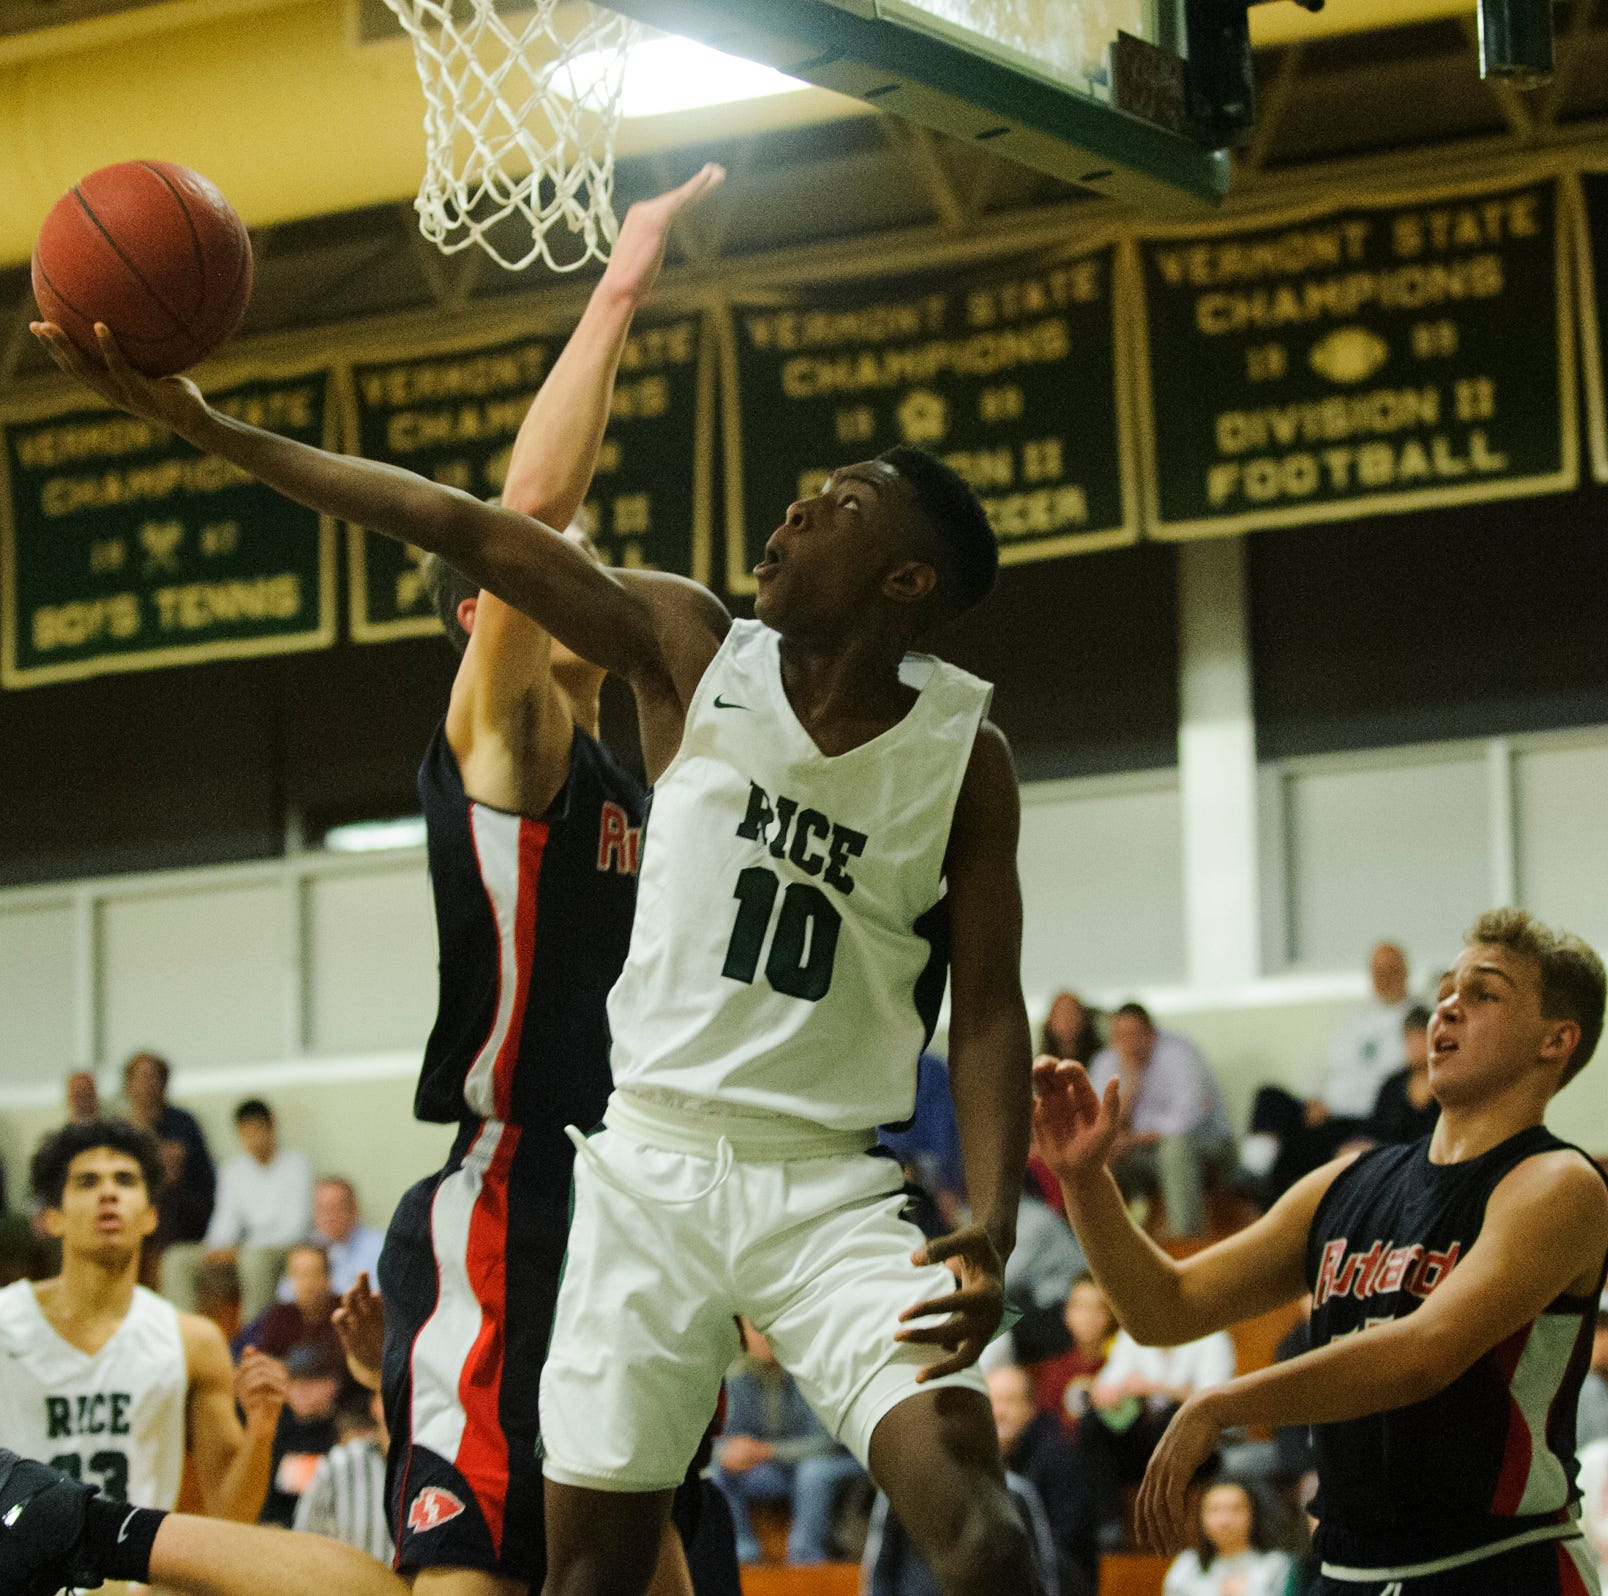 Vermont boys basketball: Rice snaps Rutland's 43-game winning streak